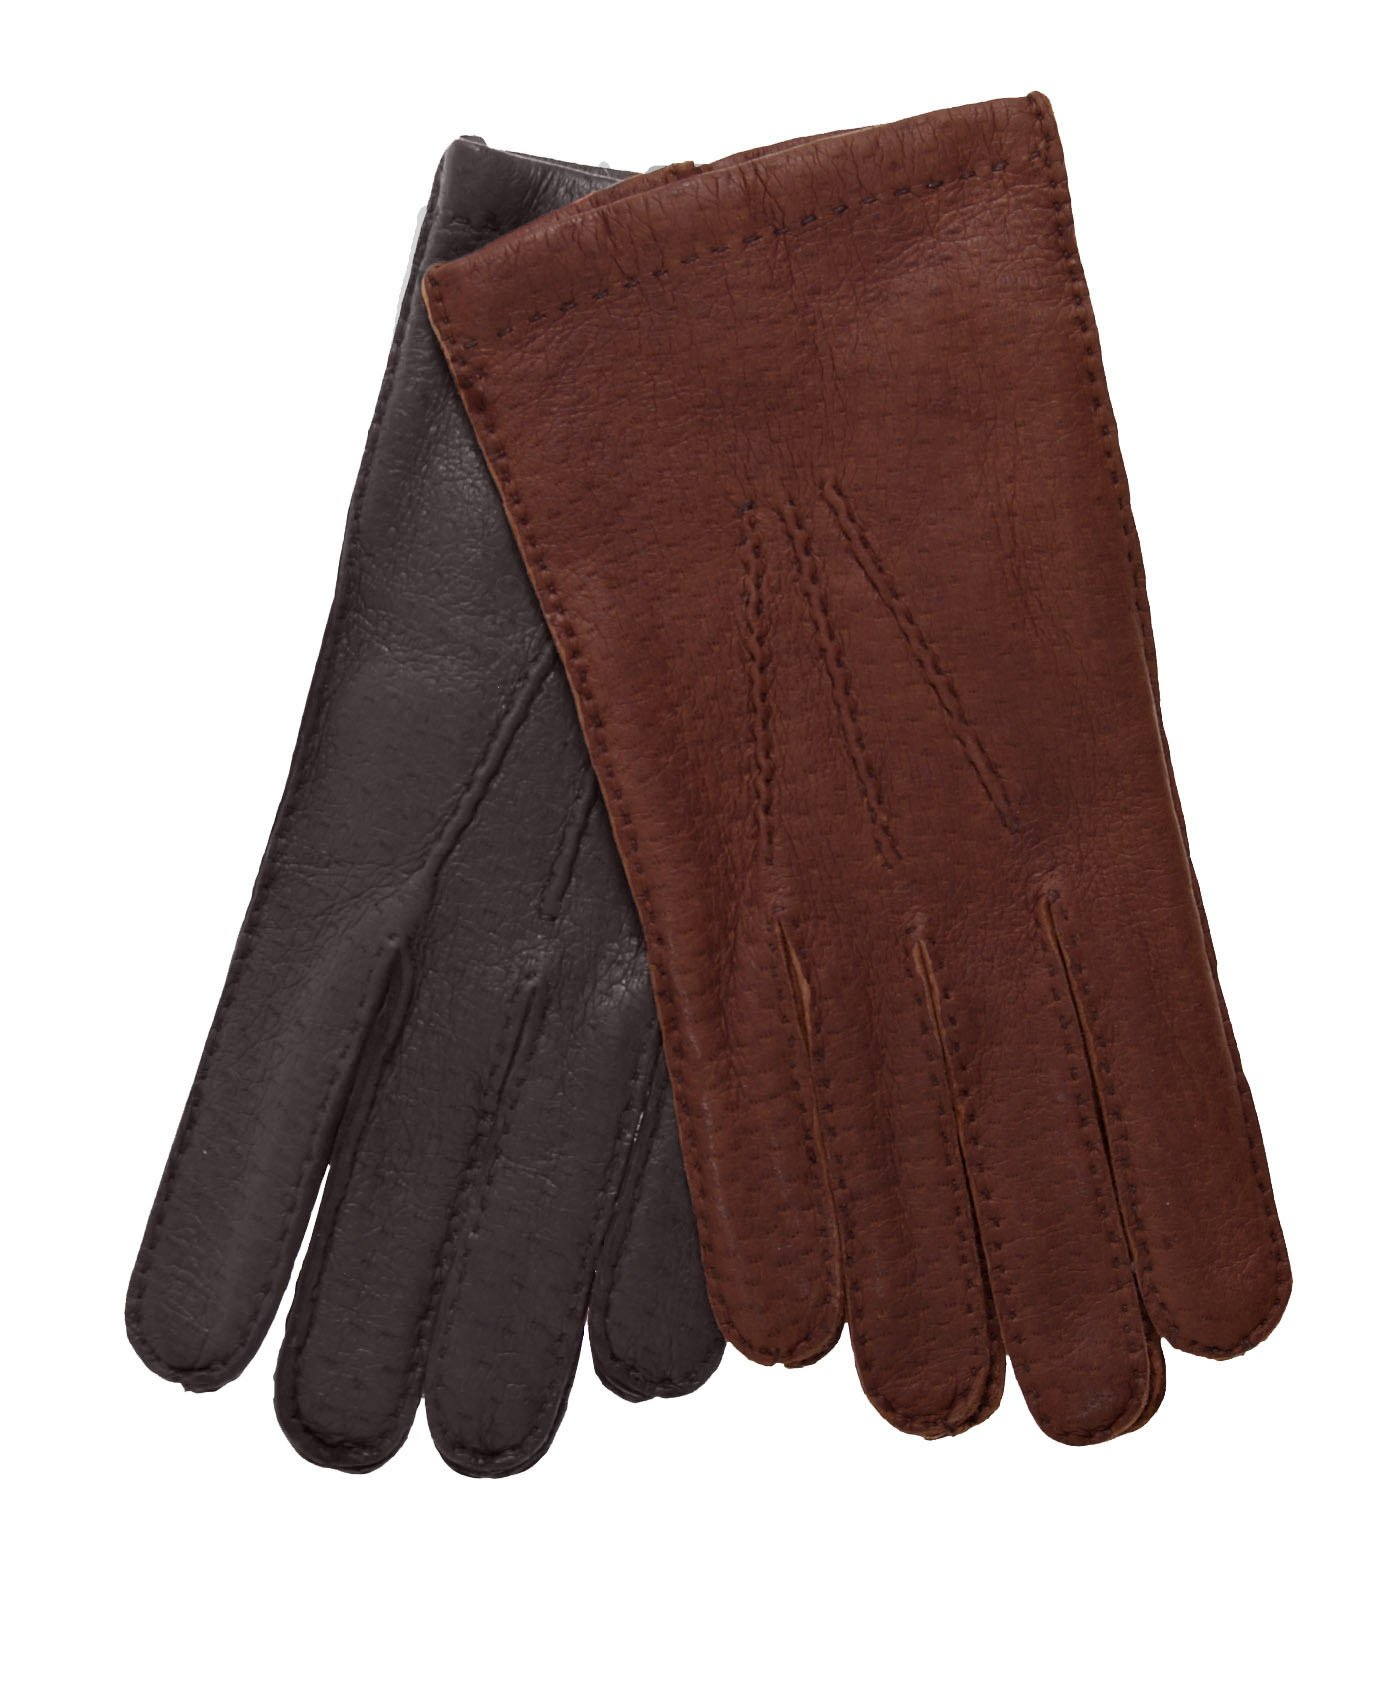 Men's Italian Cashmere Lined Peccary Gloves Size 7 Color Brown